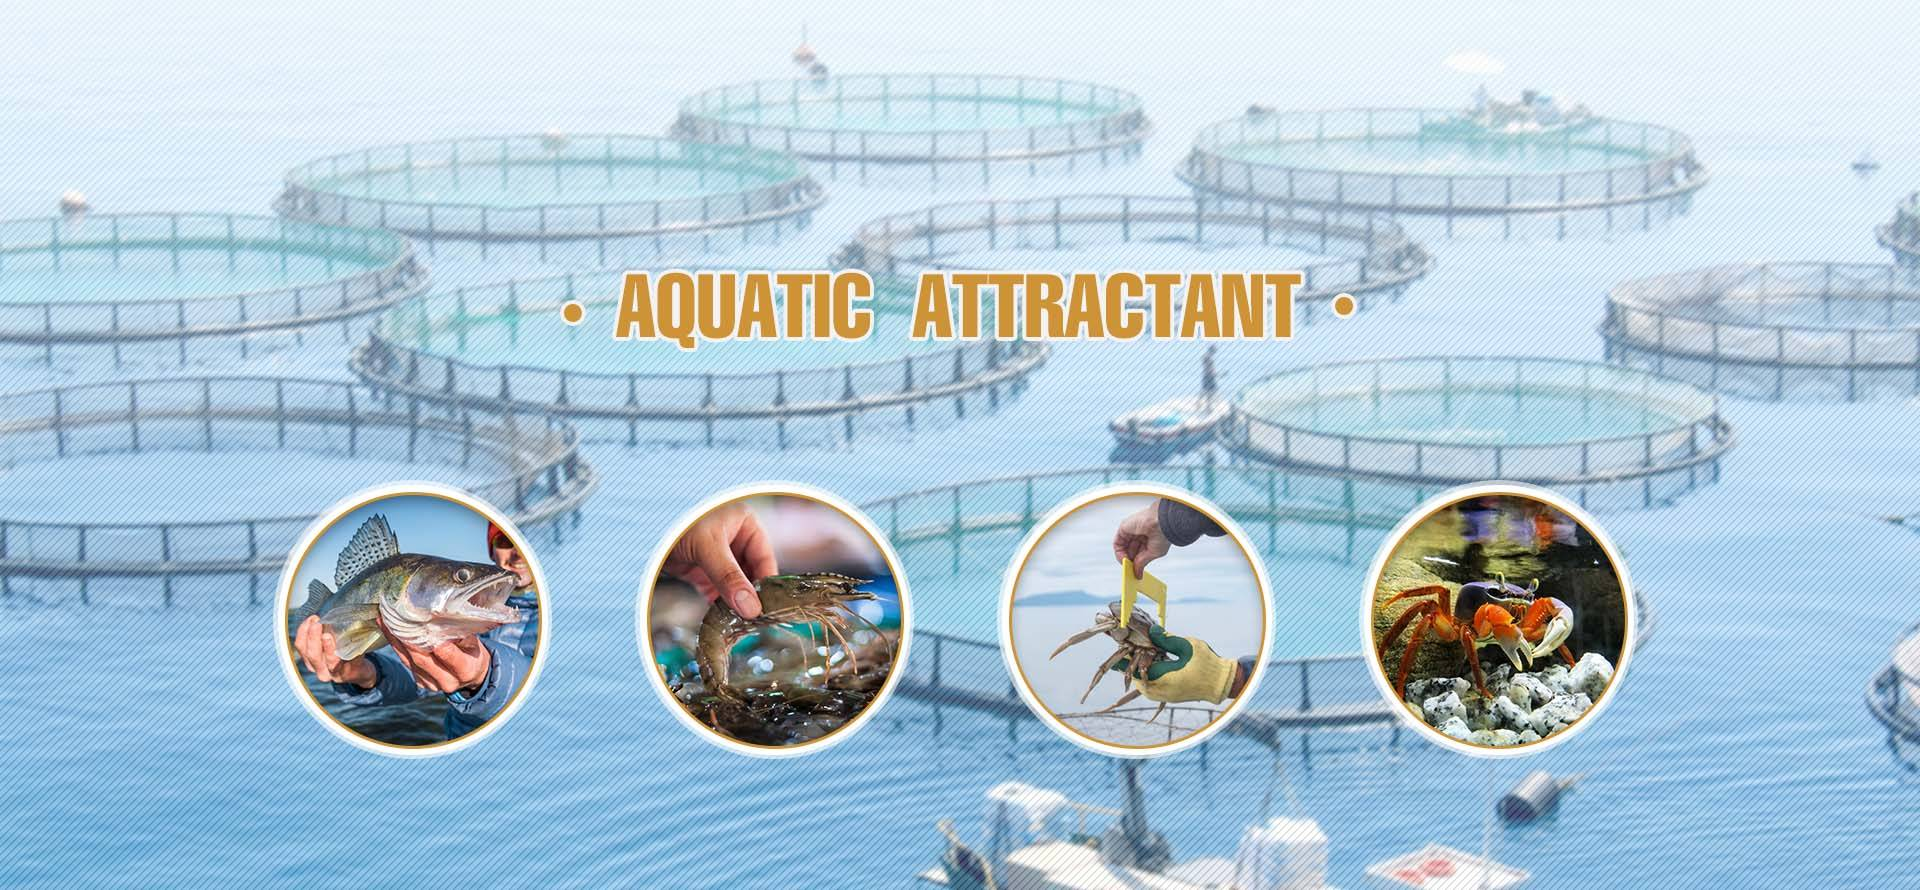 ATTRACTANT AQUATIC